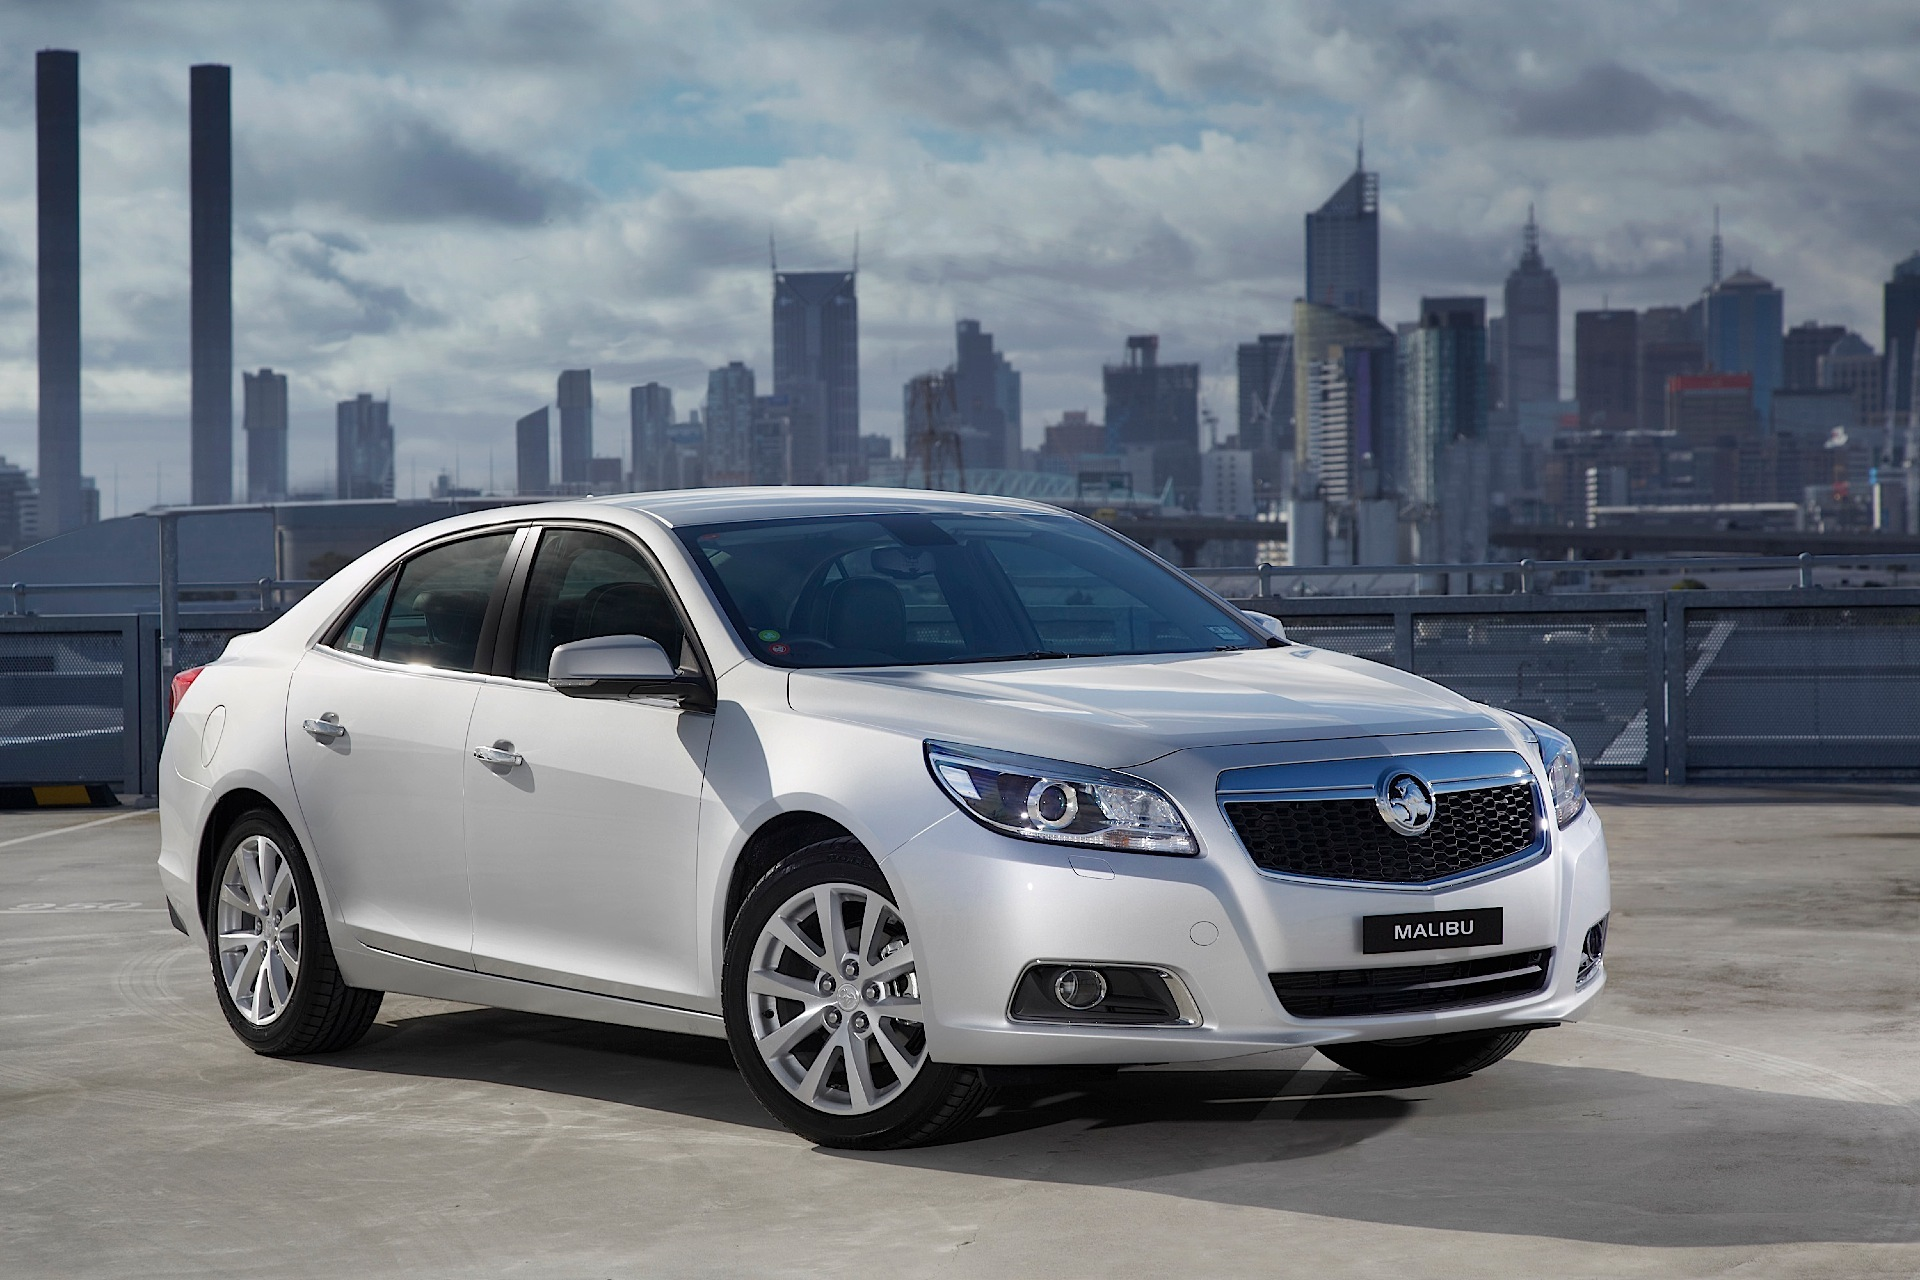 HOLDEN Malibu Specs Amp Photos 2013 2014 2015 2016